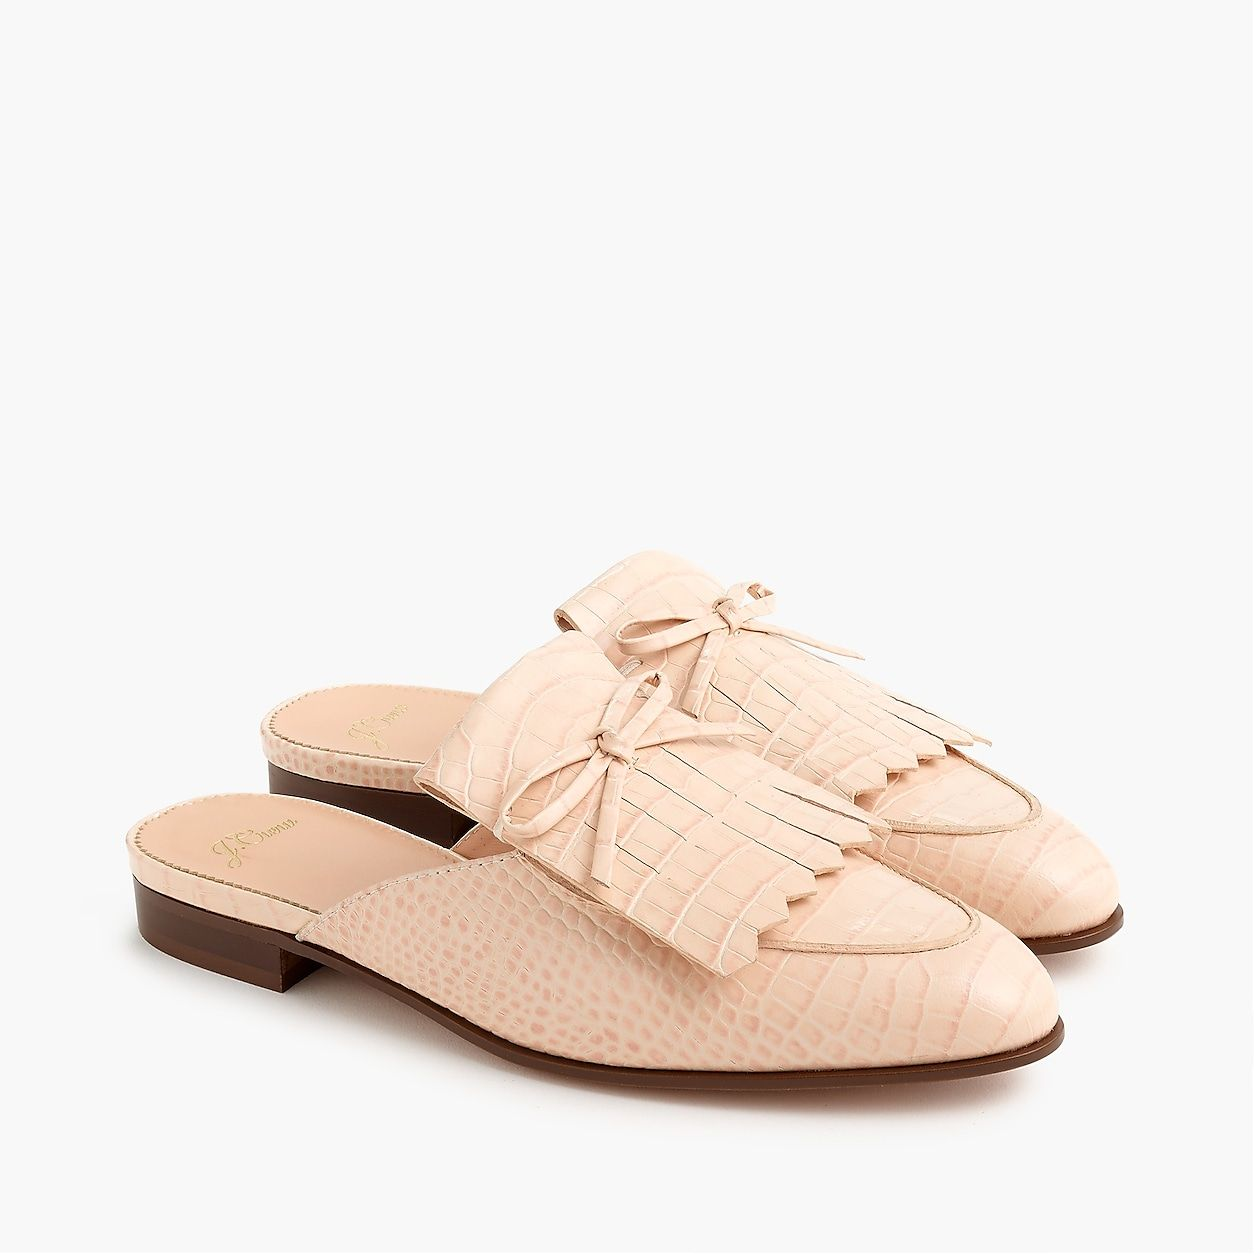 ac1644aa775 Kiltie Academy Penny Loafer Mules